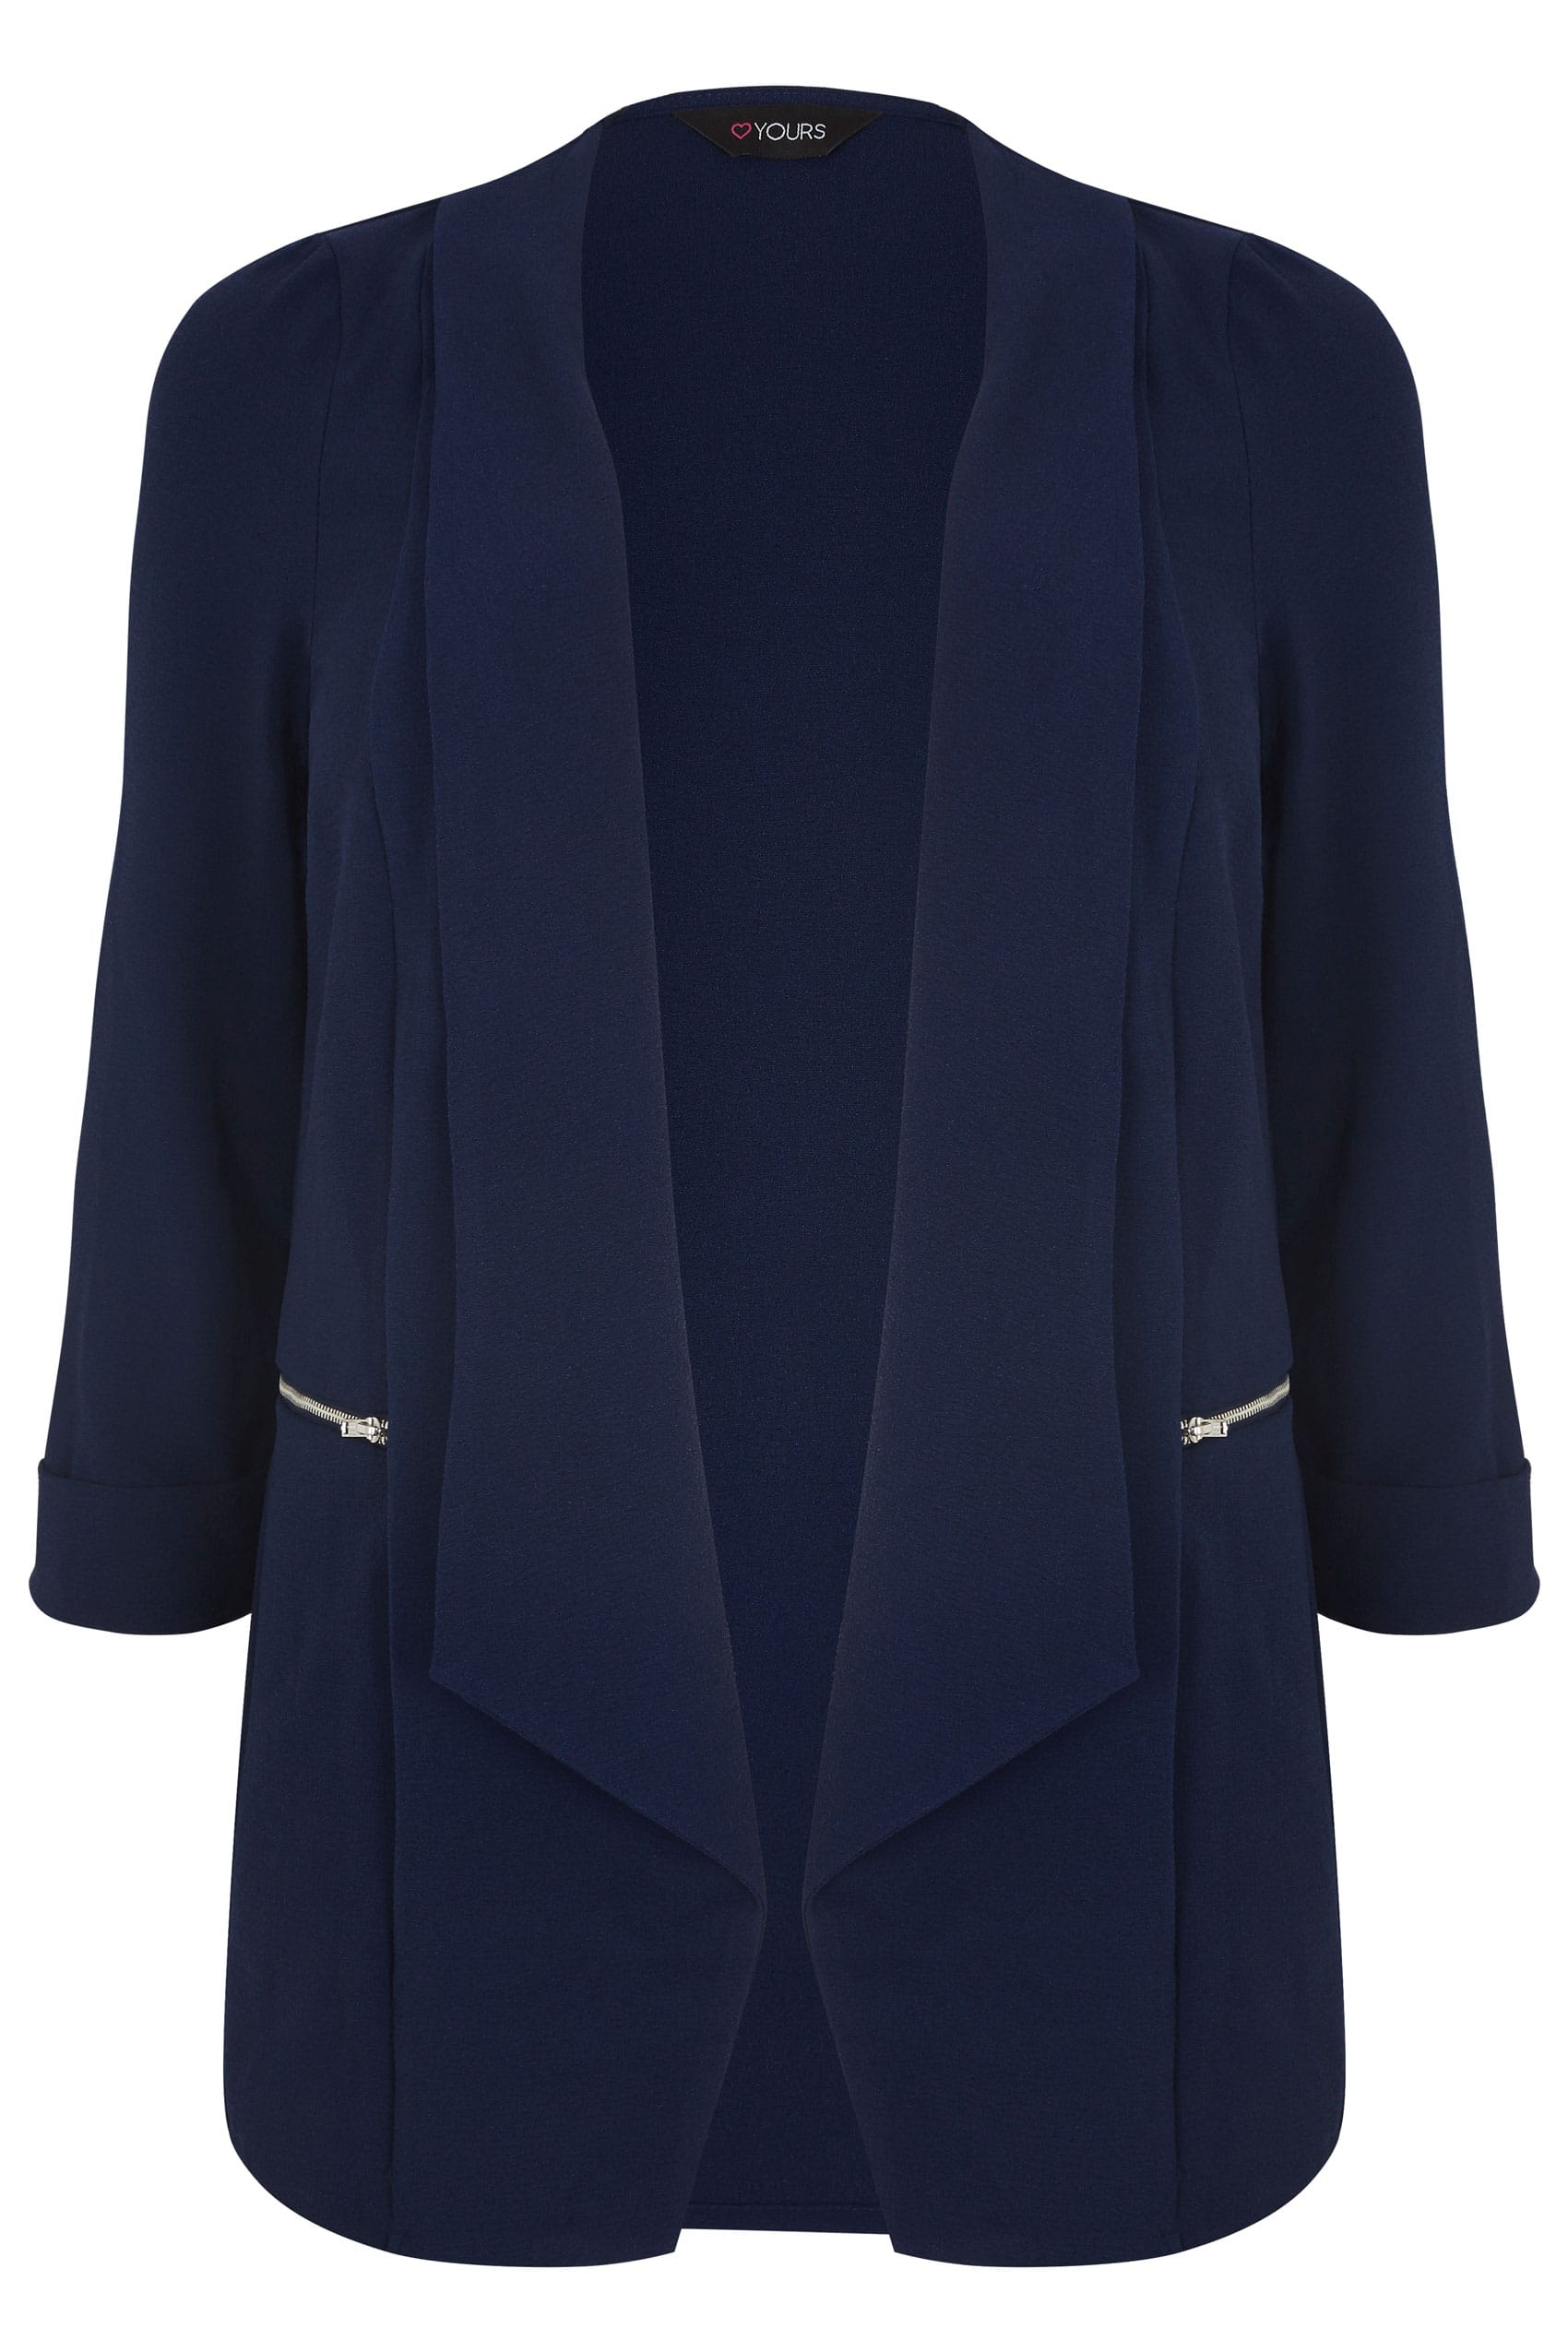 Navy Bubble Crepe Blazer Jacket With Zip Pockets, plus ...